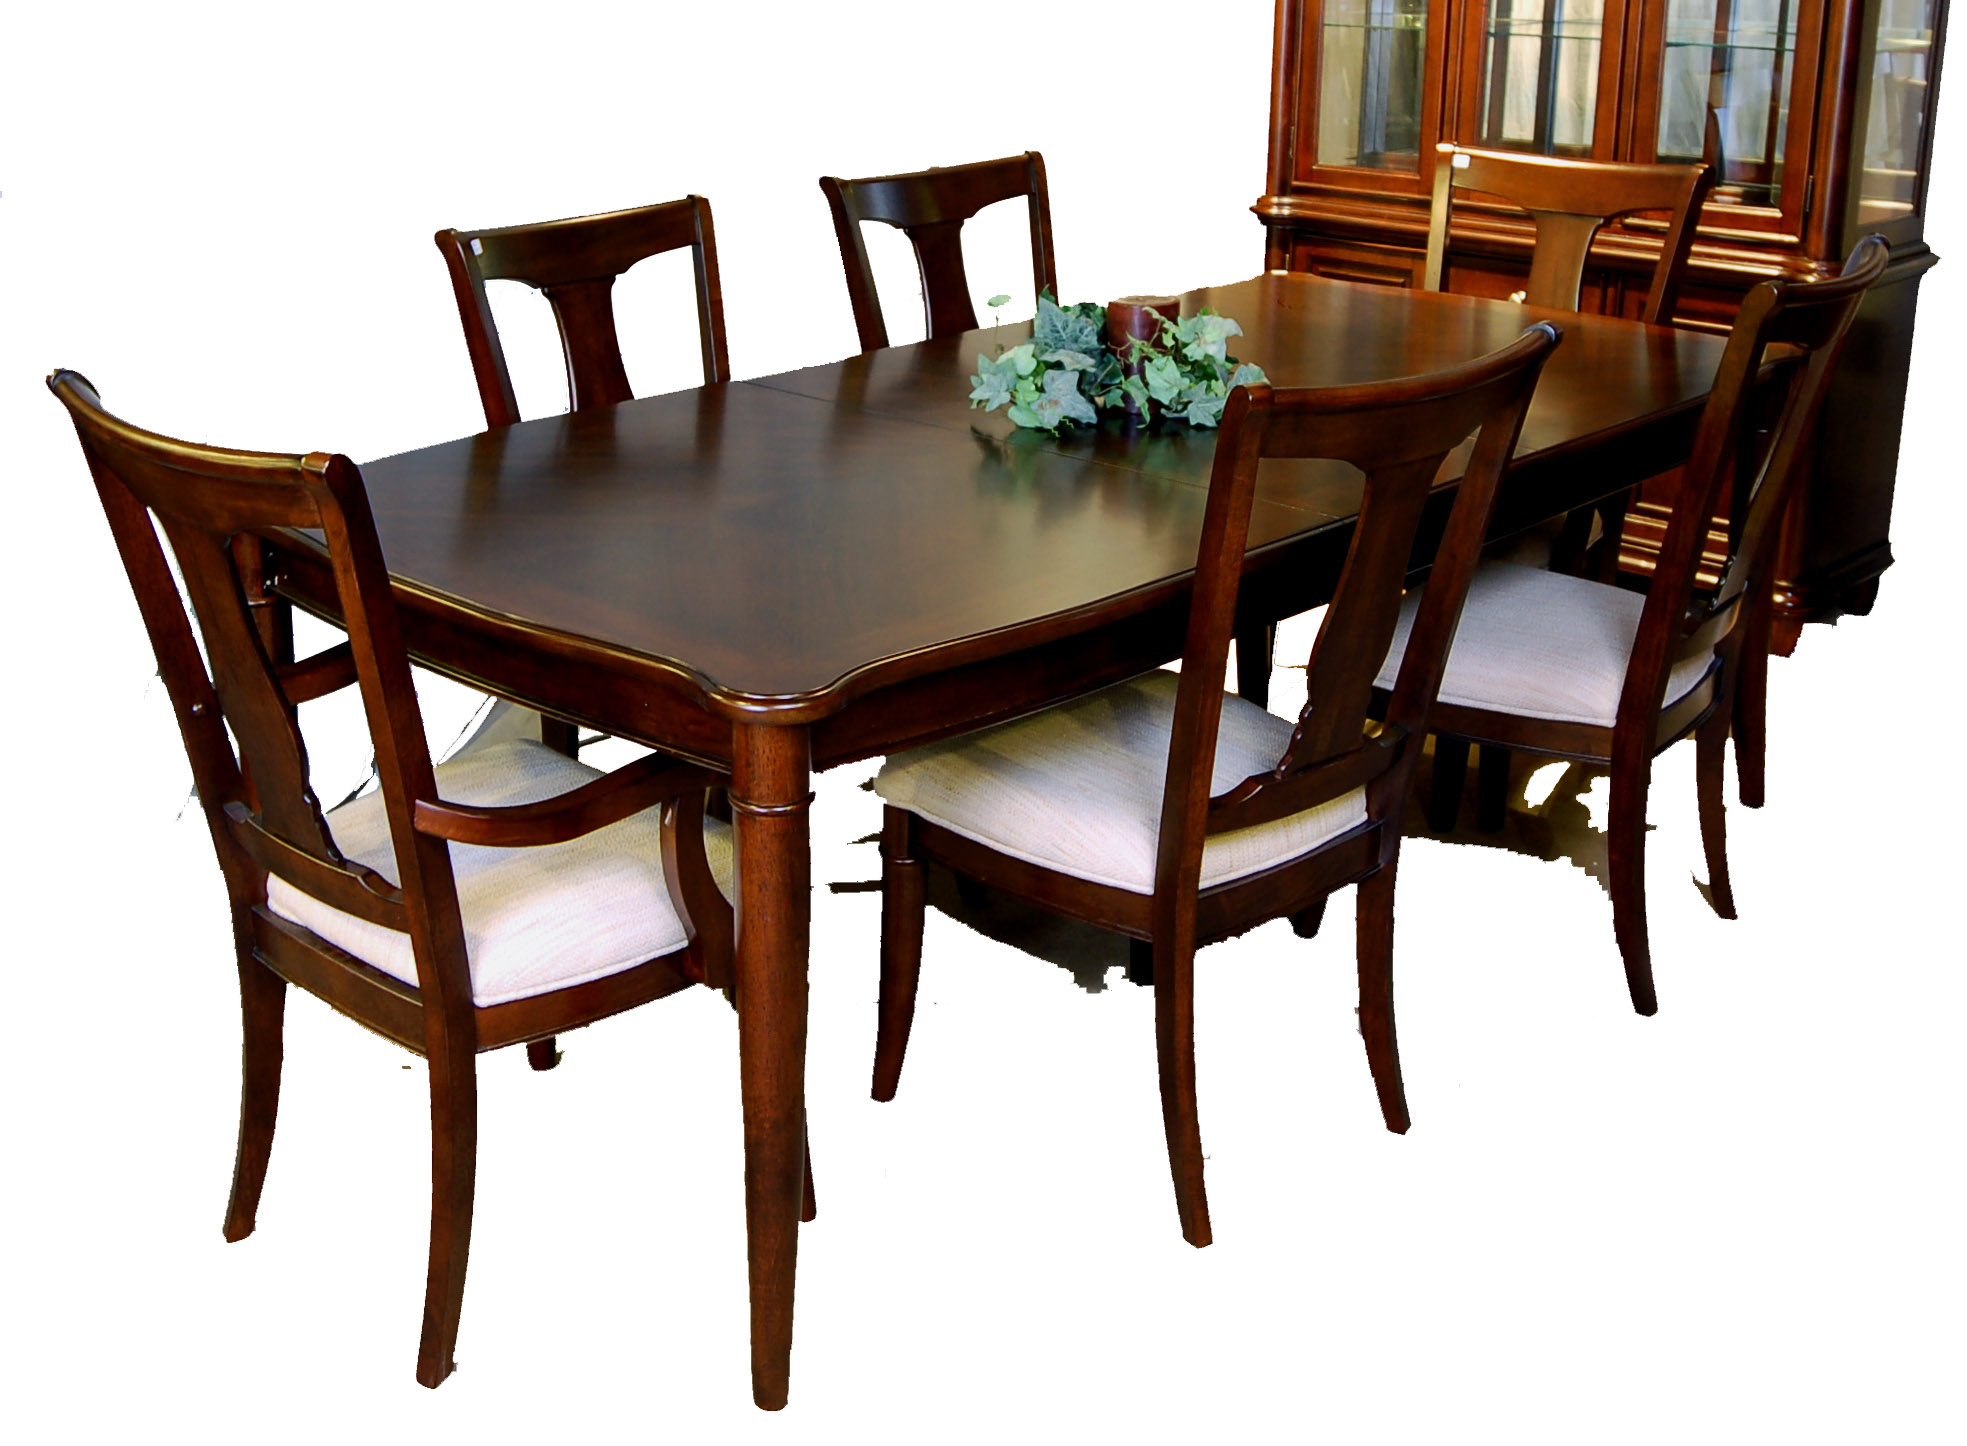 7 piece dining room table and chair set ebay for Dining table and chairs